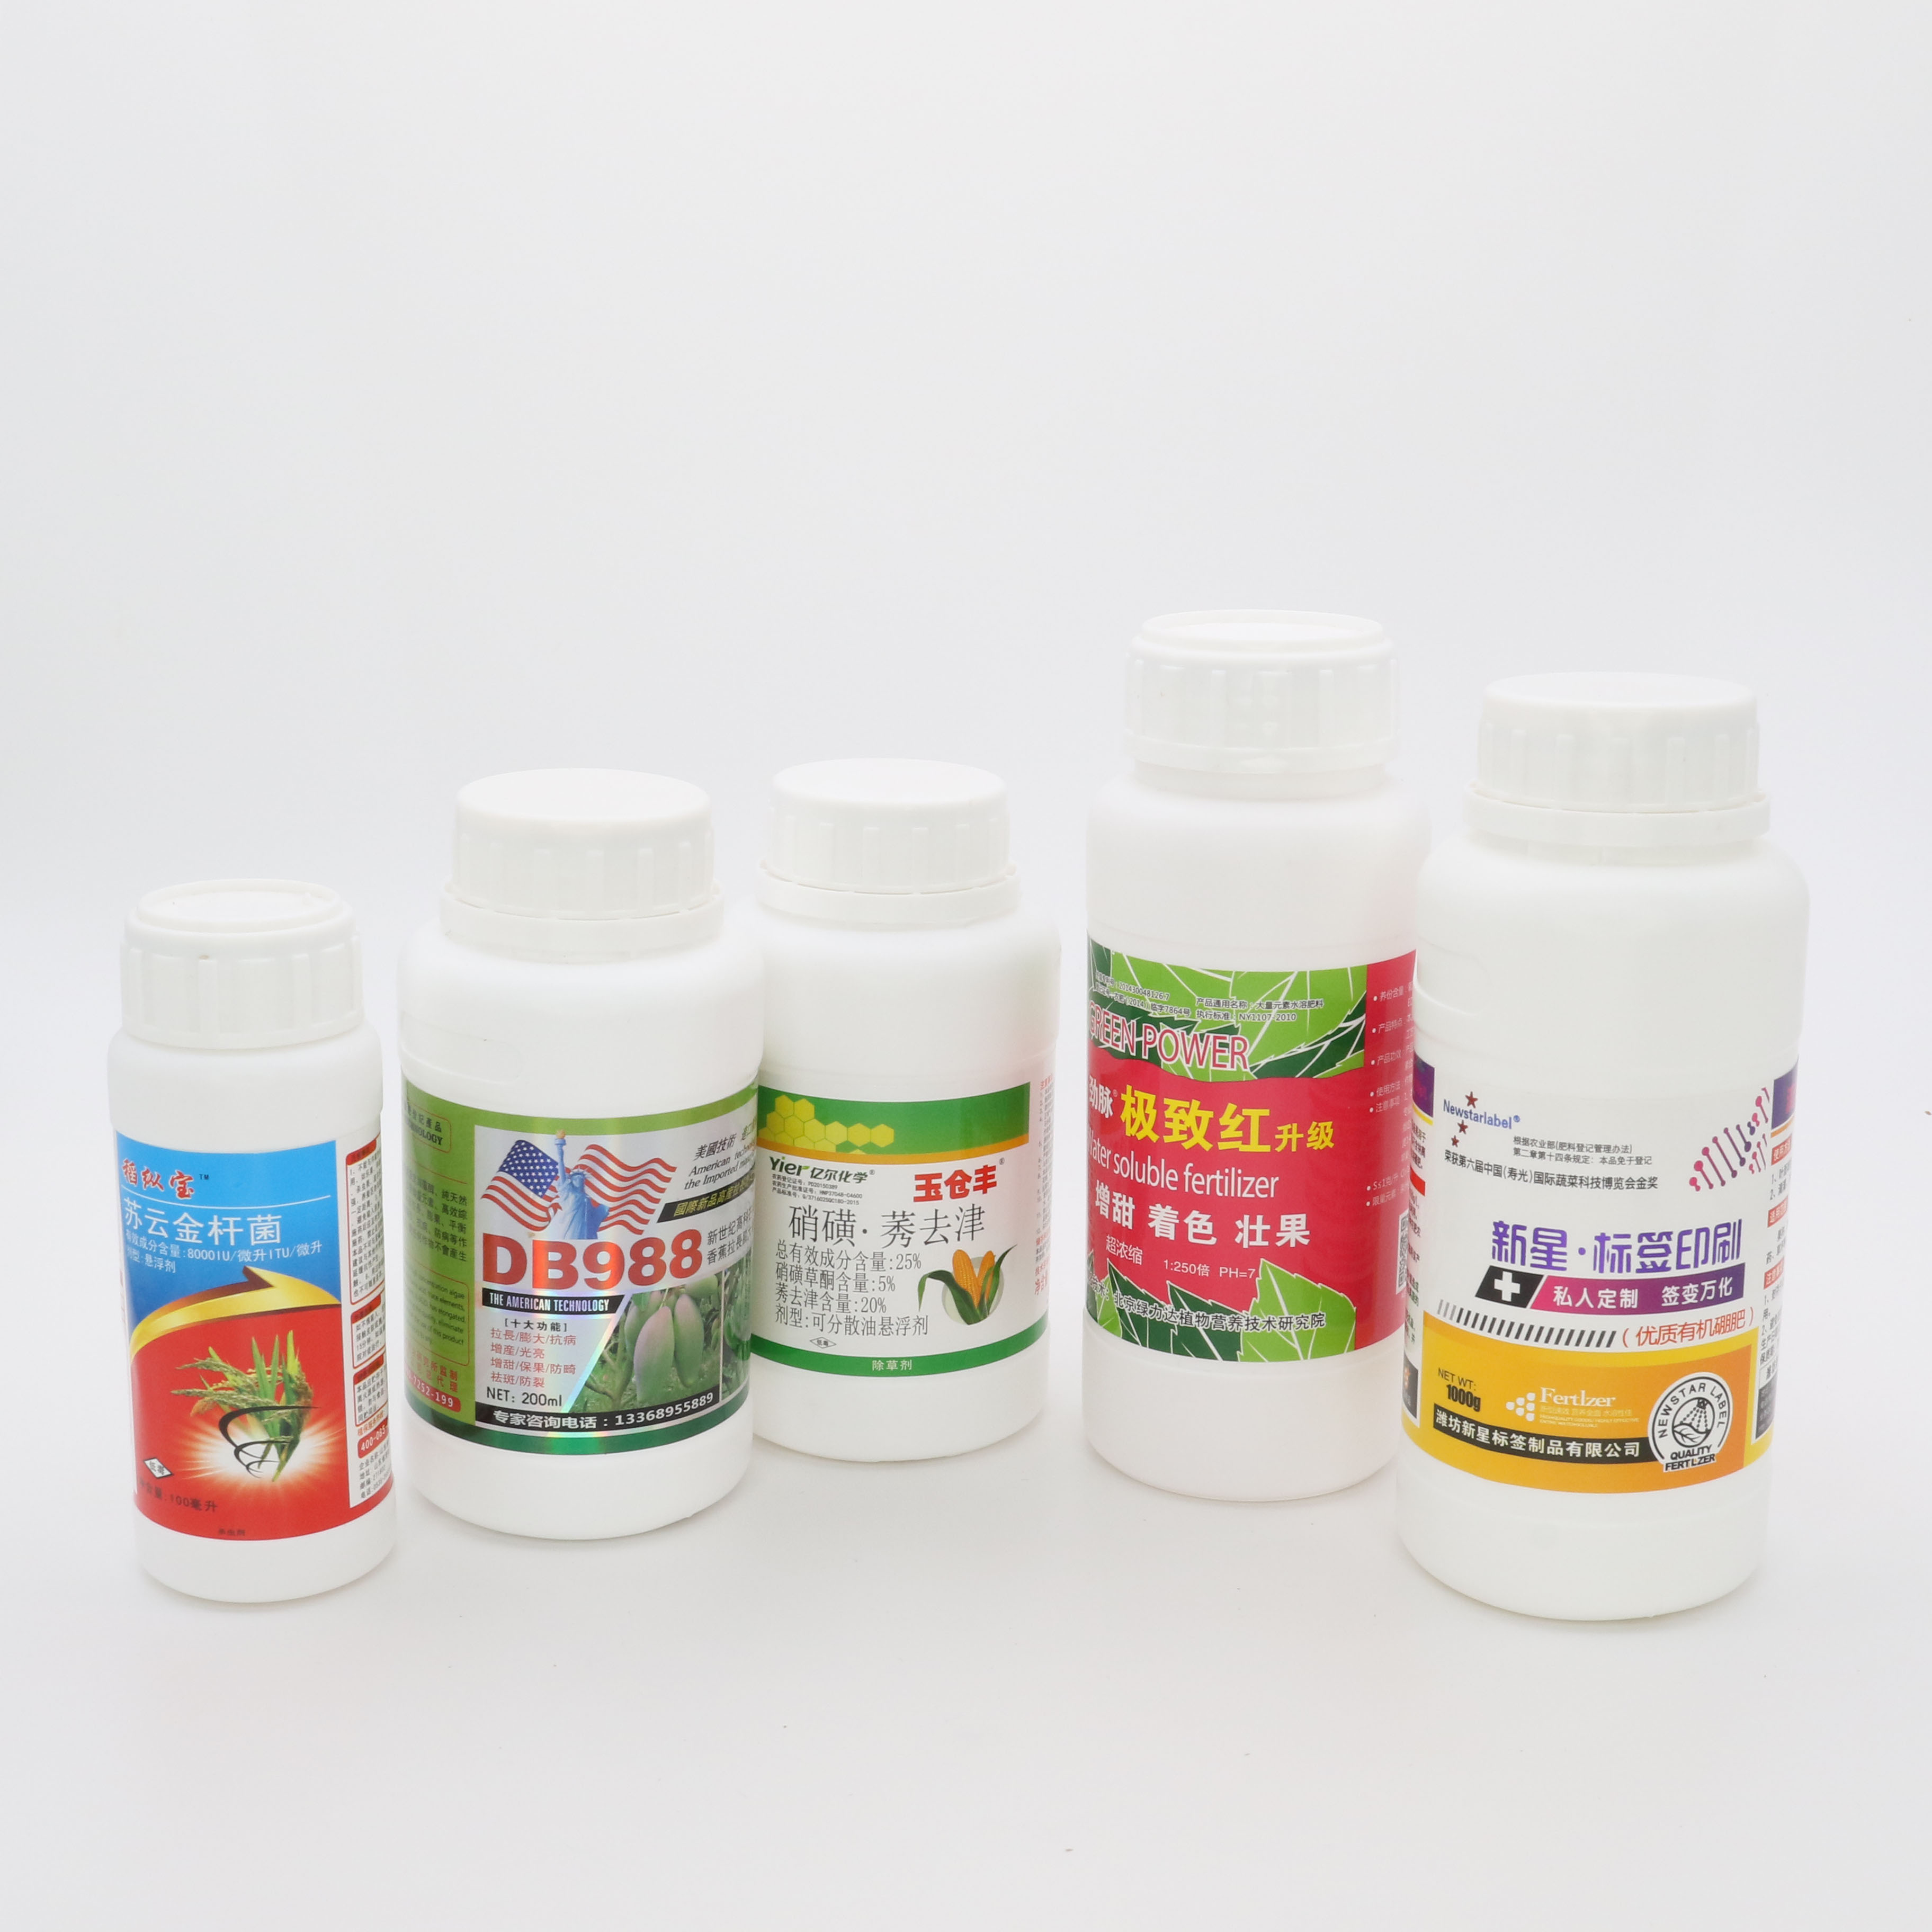 Printing adhesive waterproof pesticide stickers labels, custom pesticide bottle labels